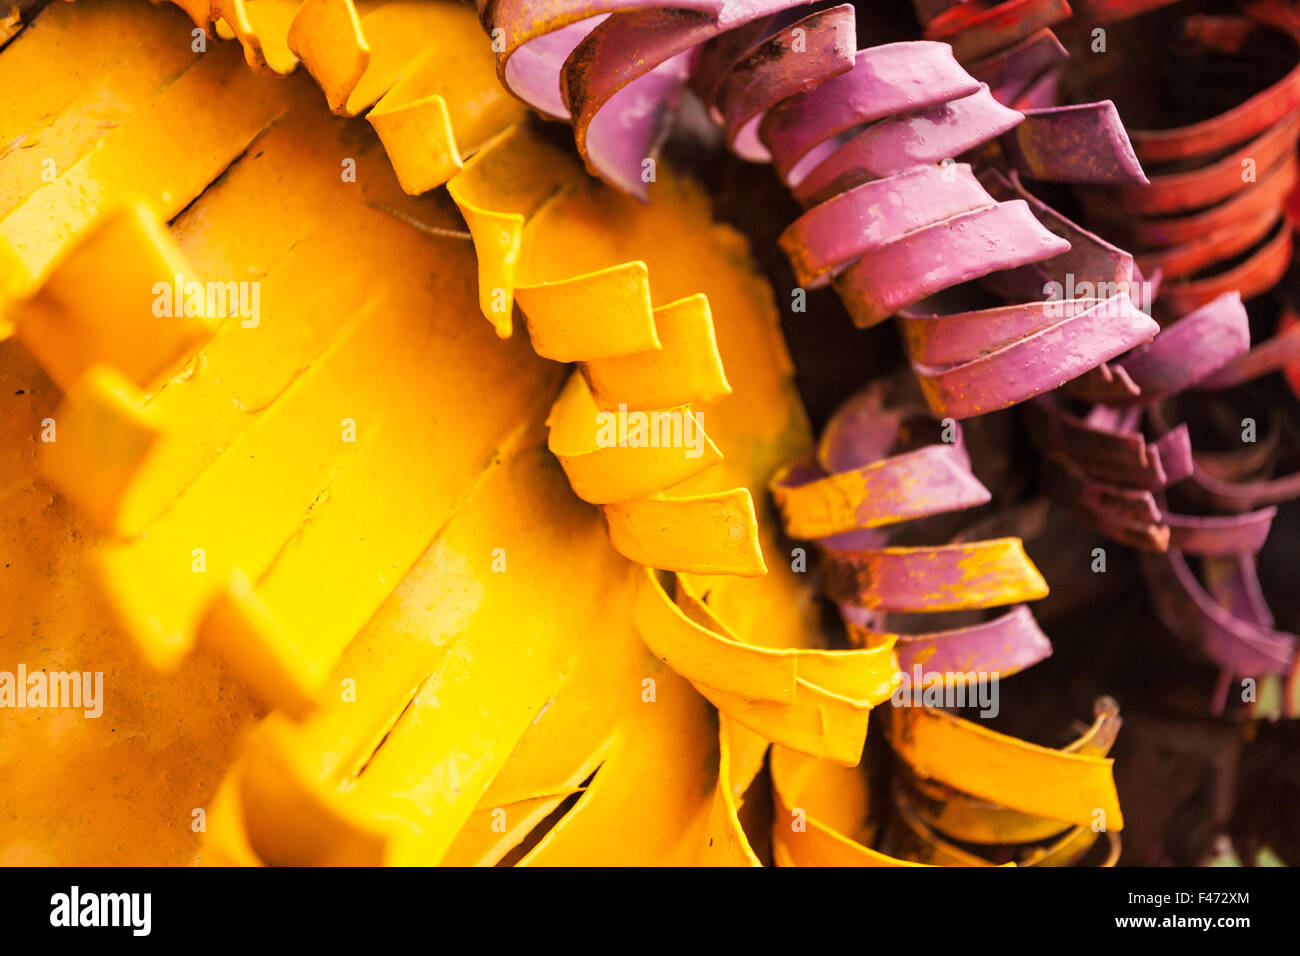 Painted yellow and purple metal bars - Stock Image